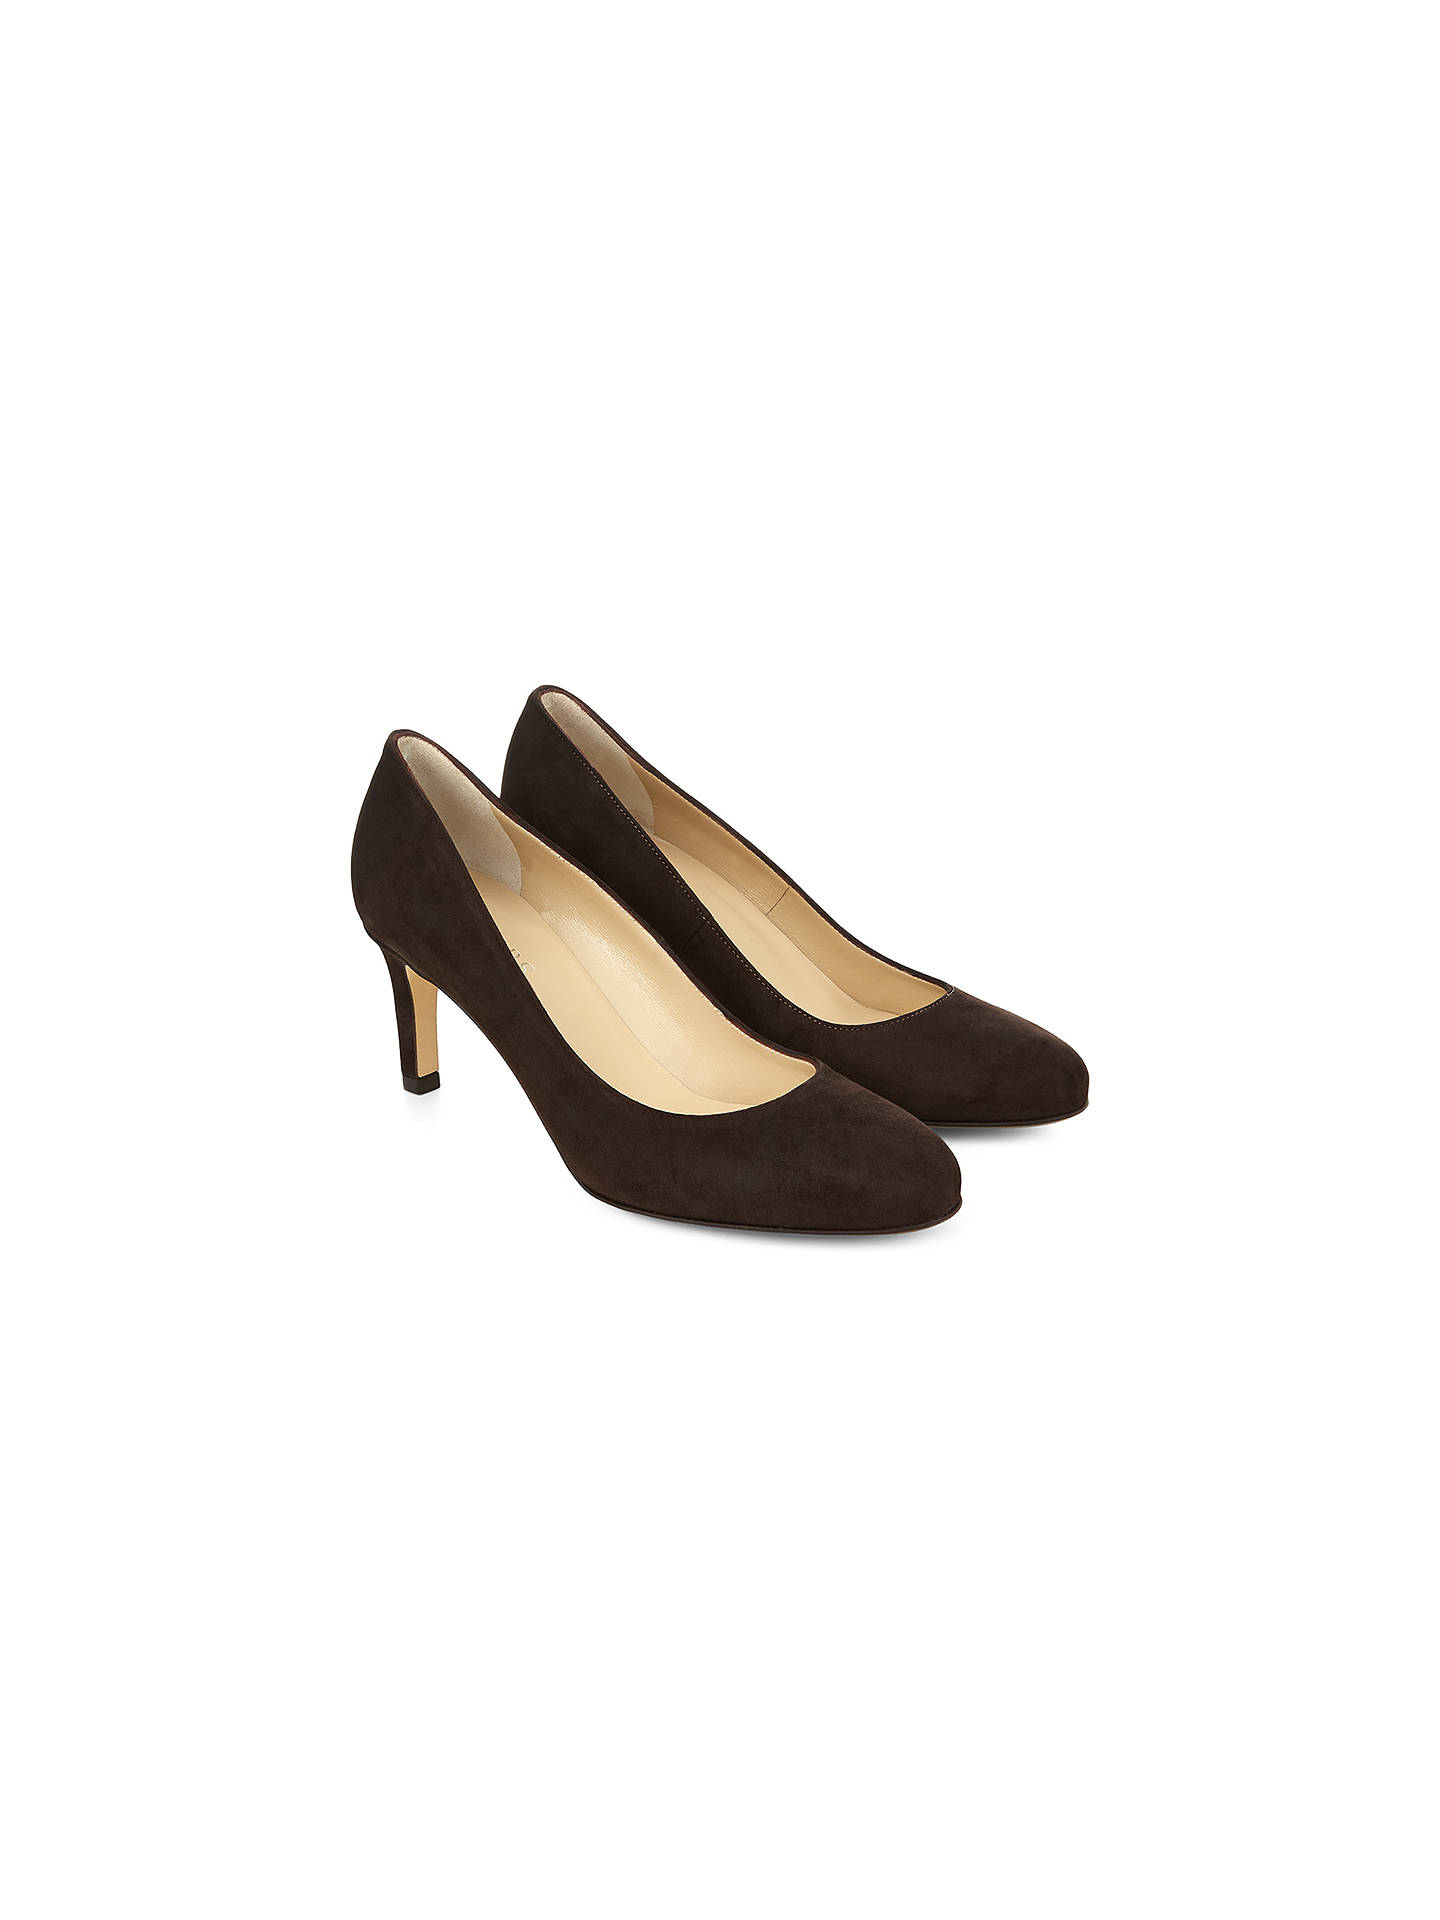 e2c29f6292864 Hobbs Lizzie Leather Court Shoes at John Lewis & Partners